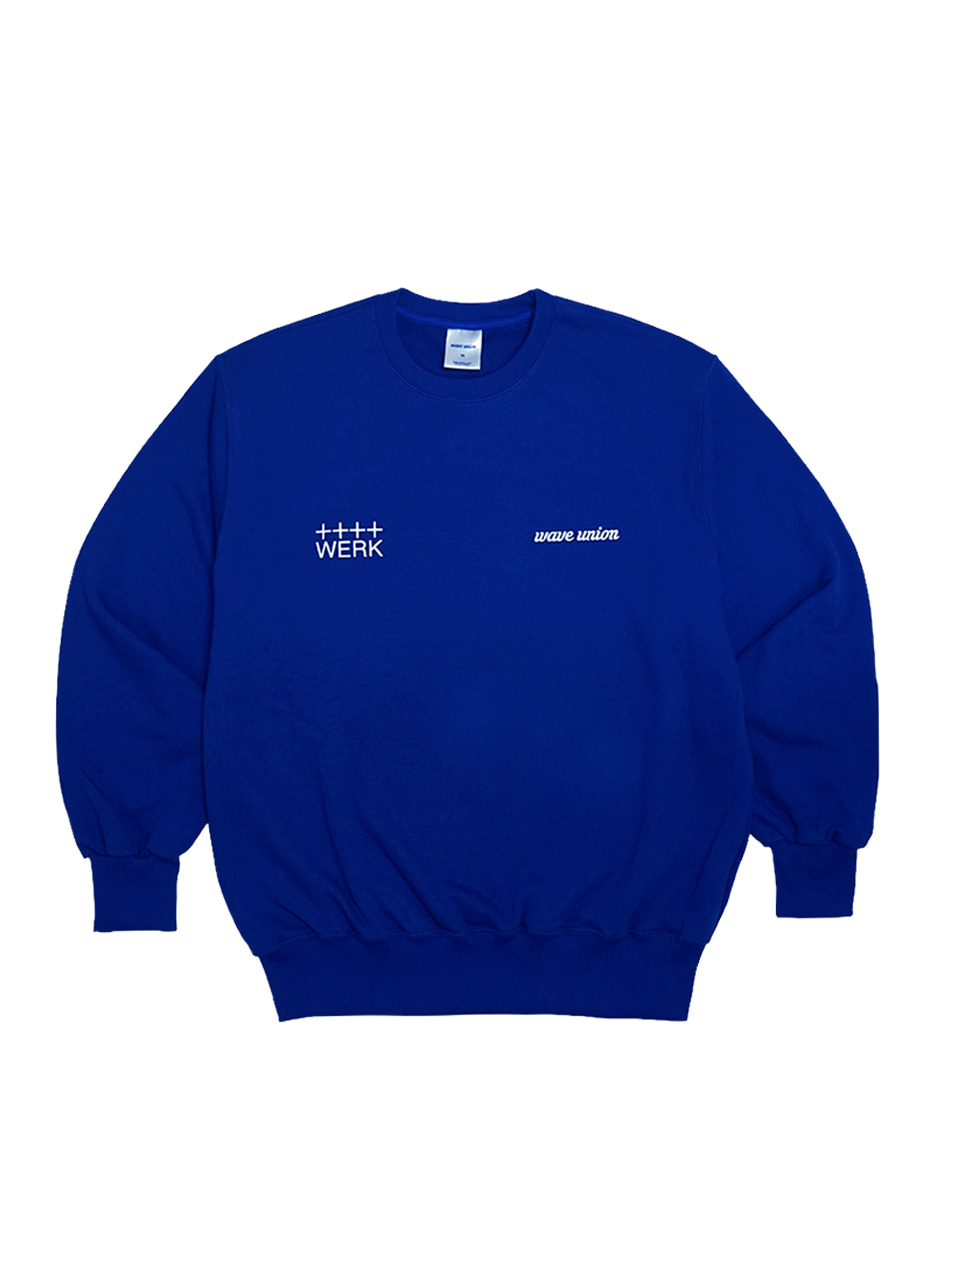 Roasting machine sweat shirt blue